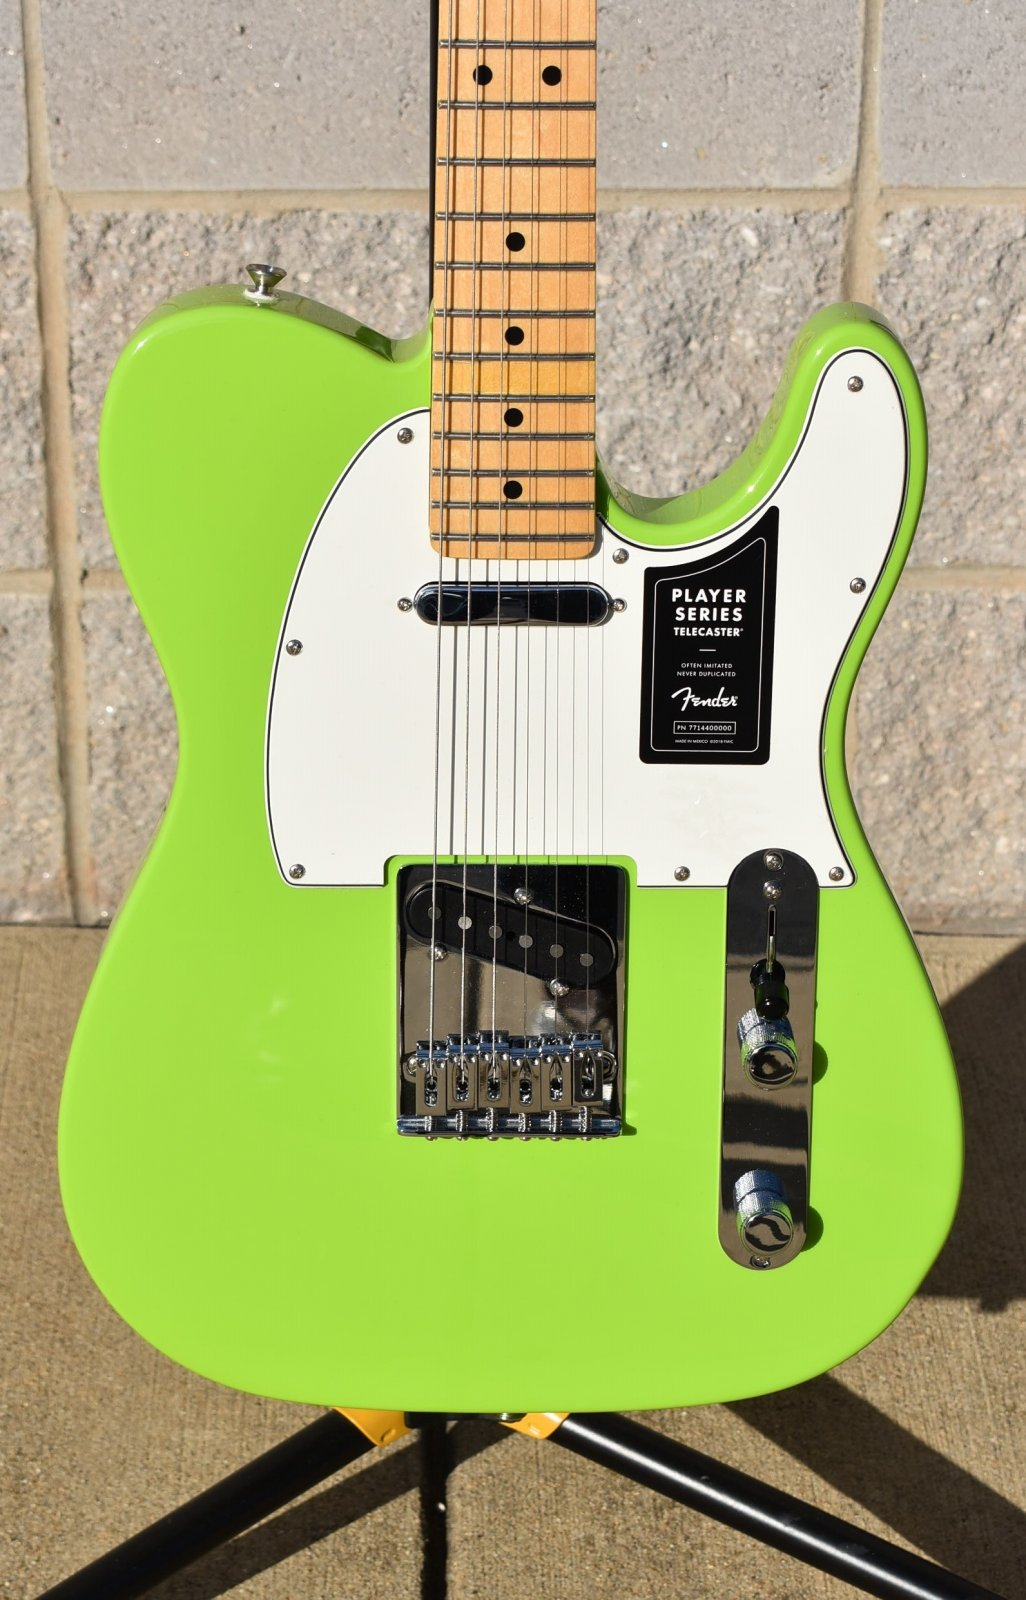 2019 Limited Edition Fender Player Telecaster     Electron Green